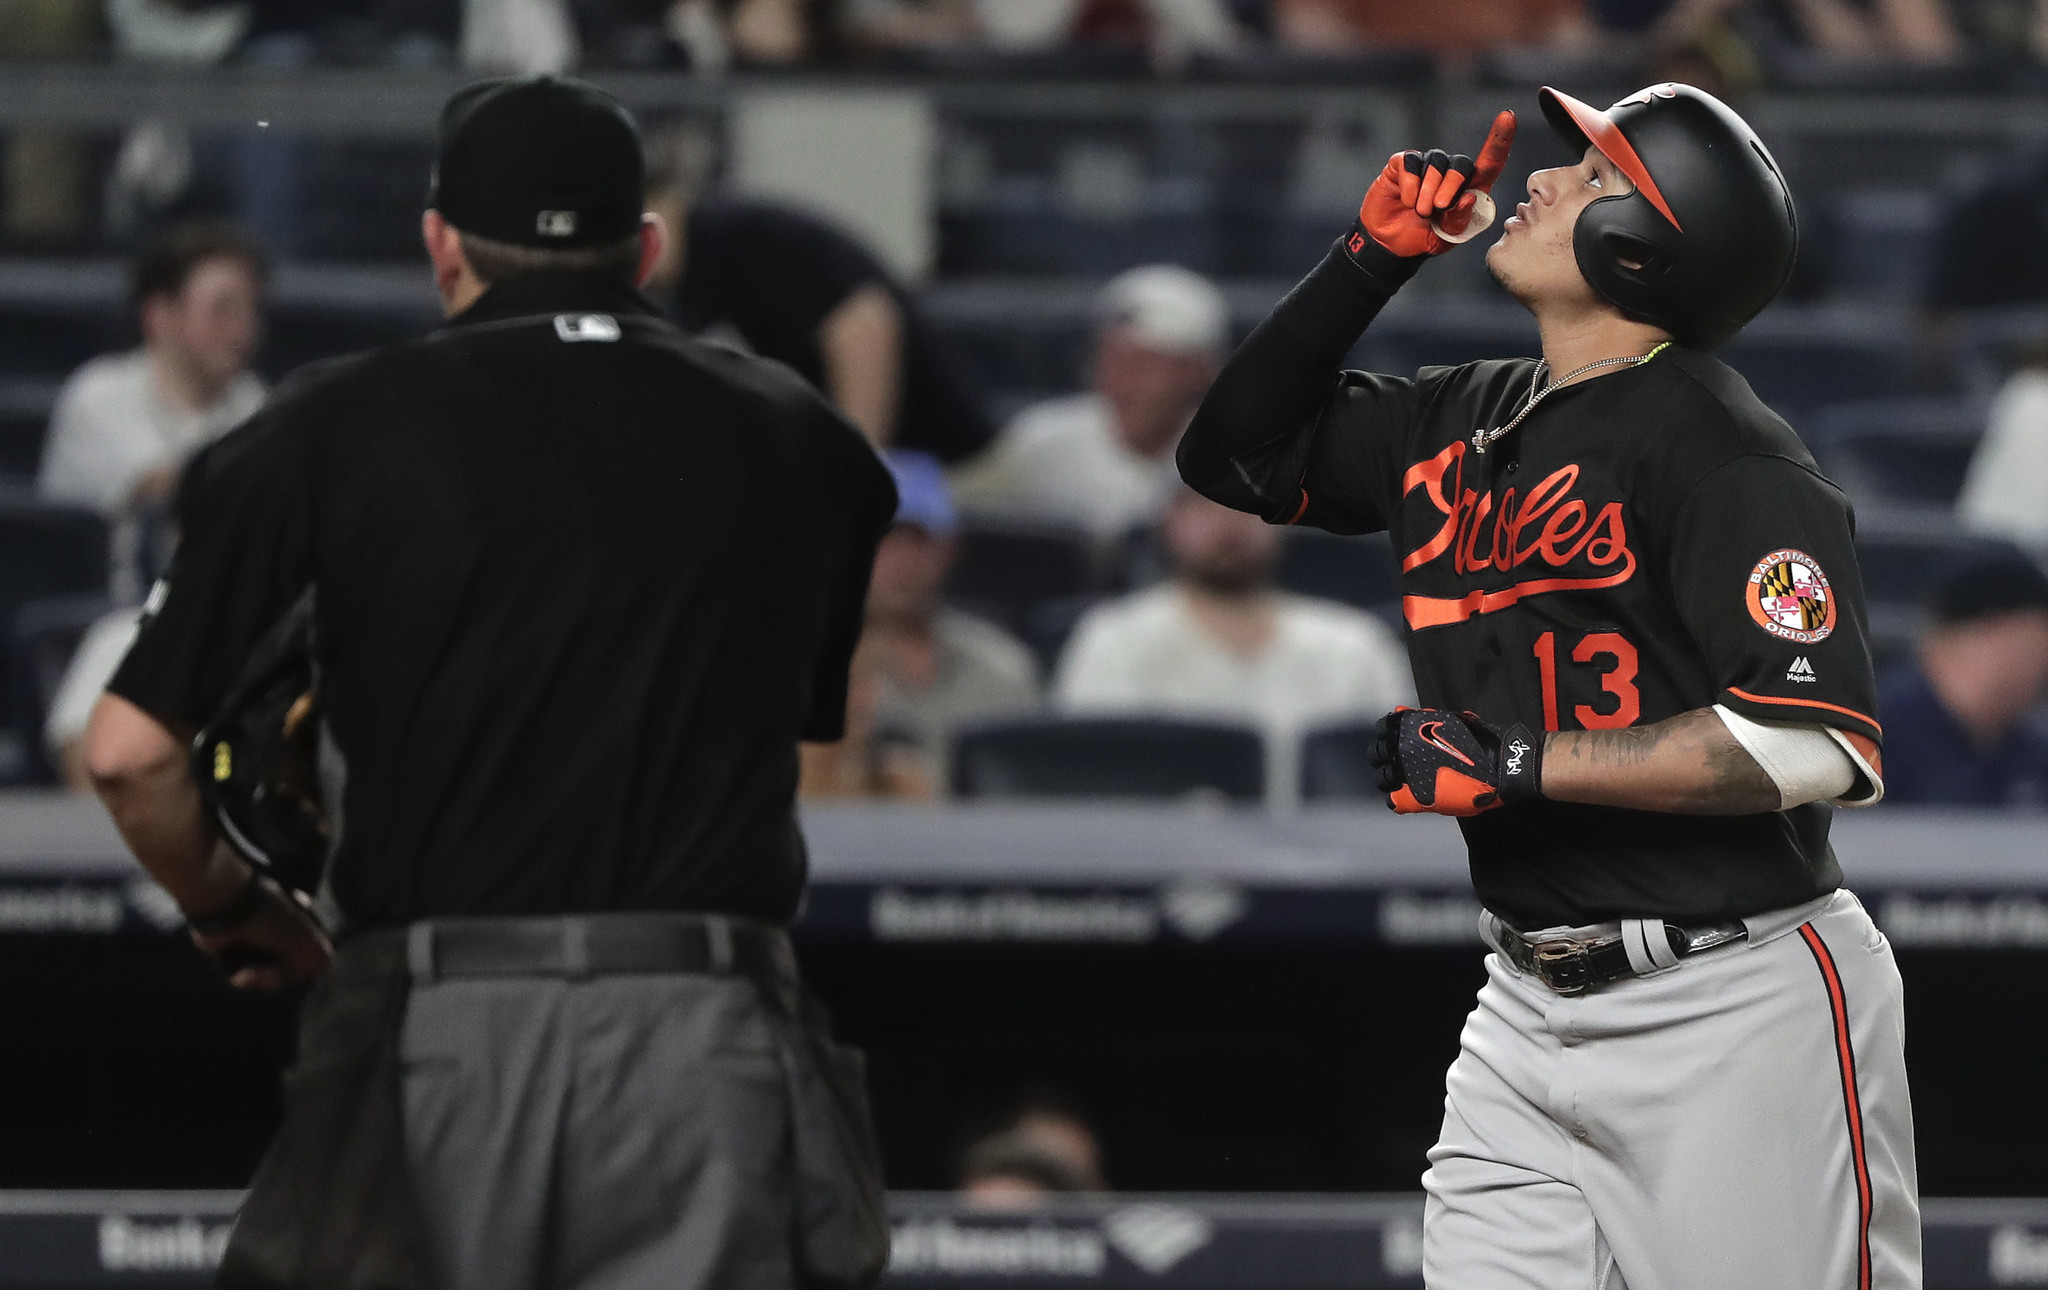 Bal-orioles-on-deck-what-to-watch-saturday-at-yankees-20170428